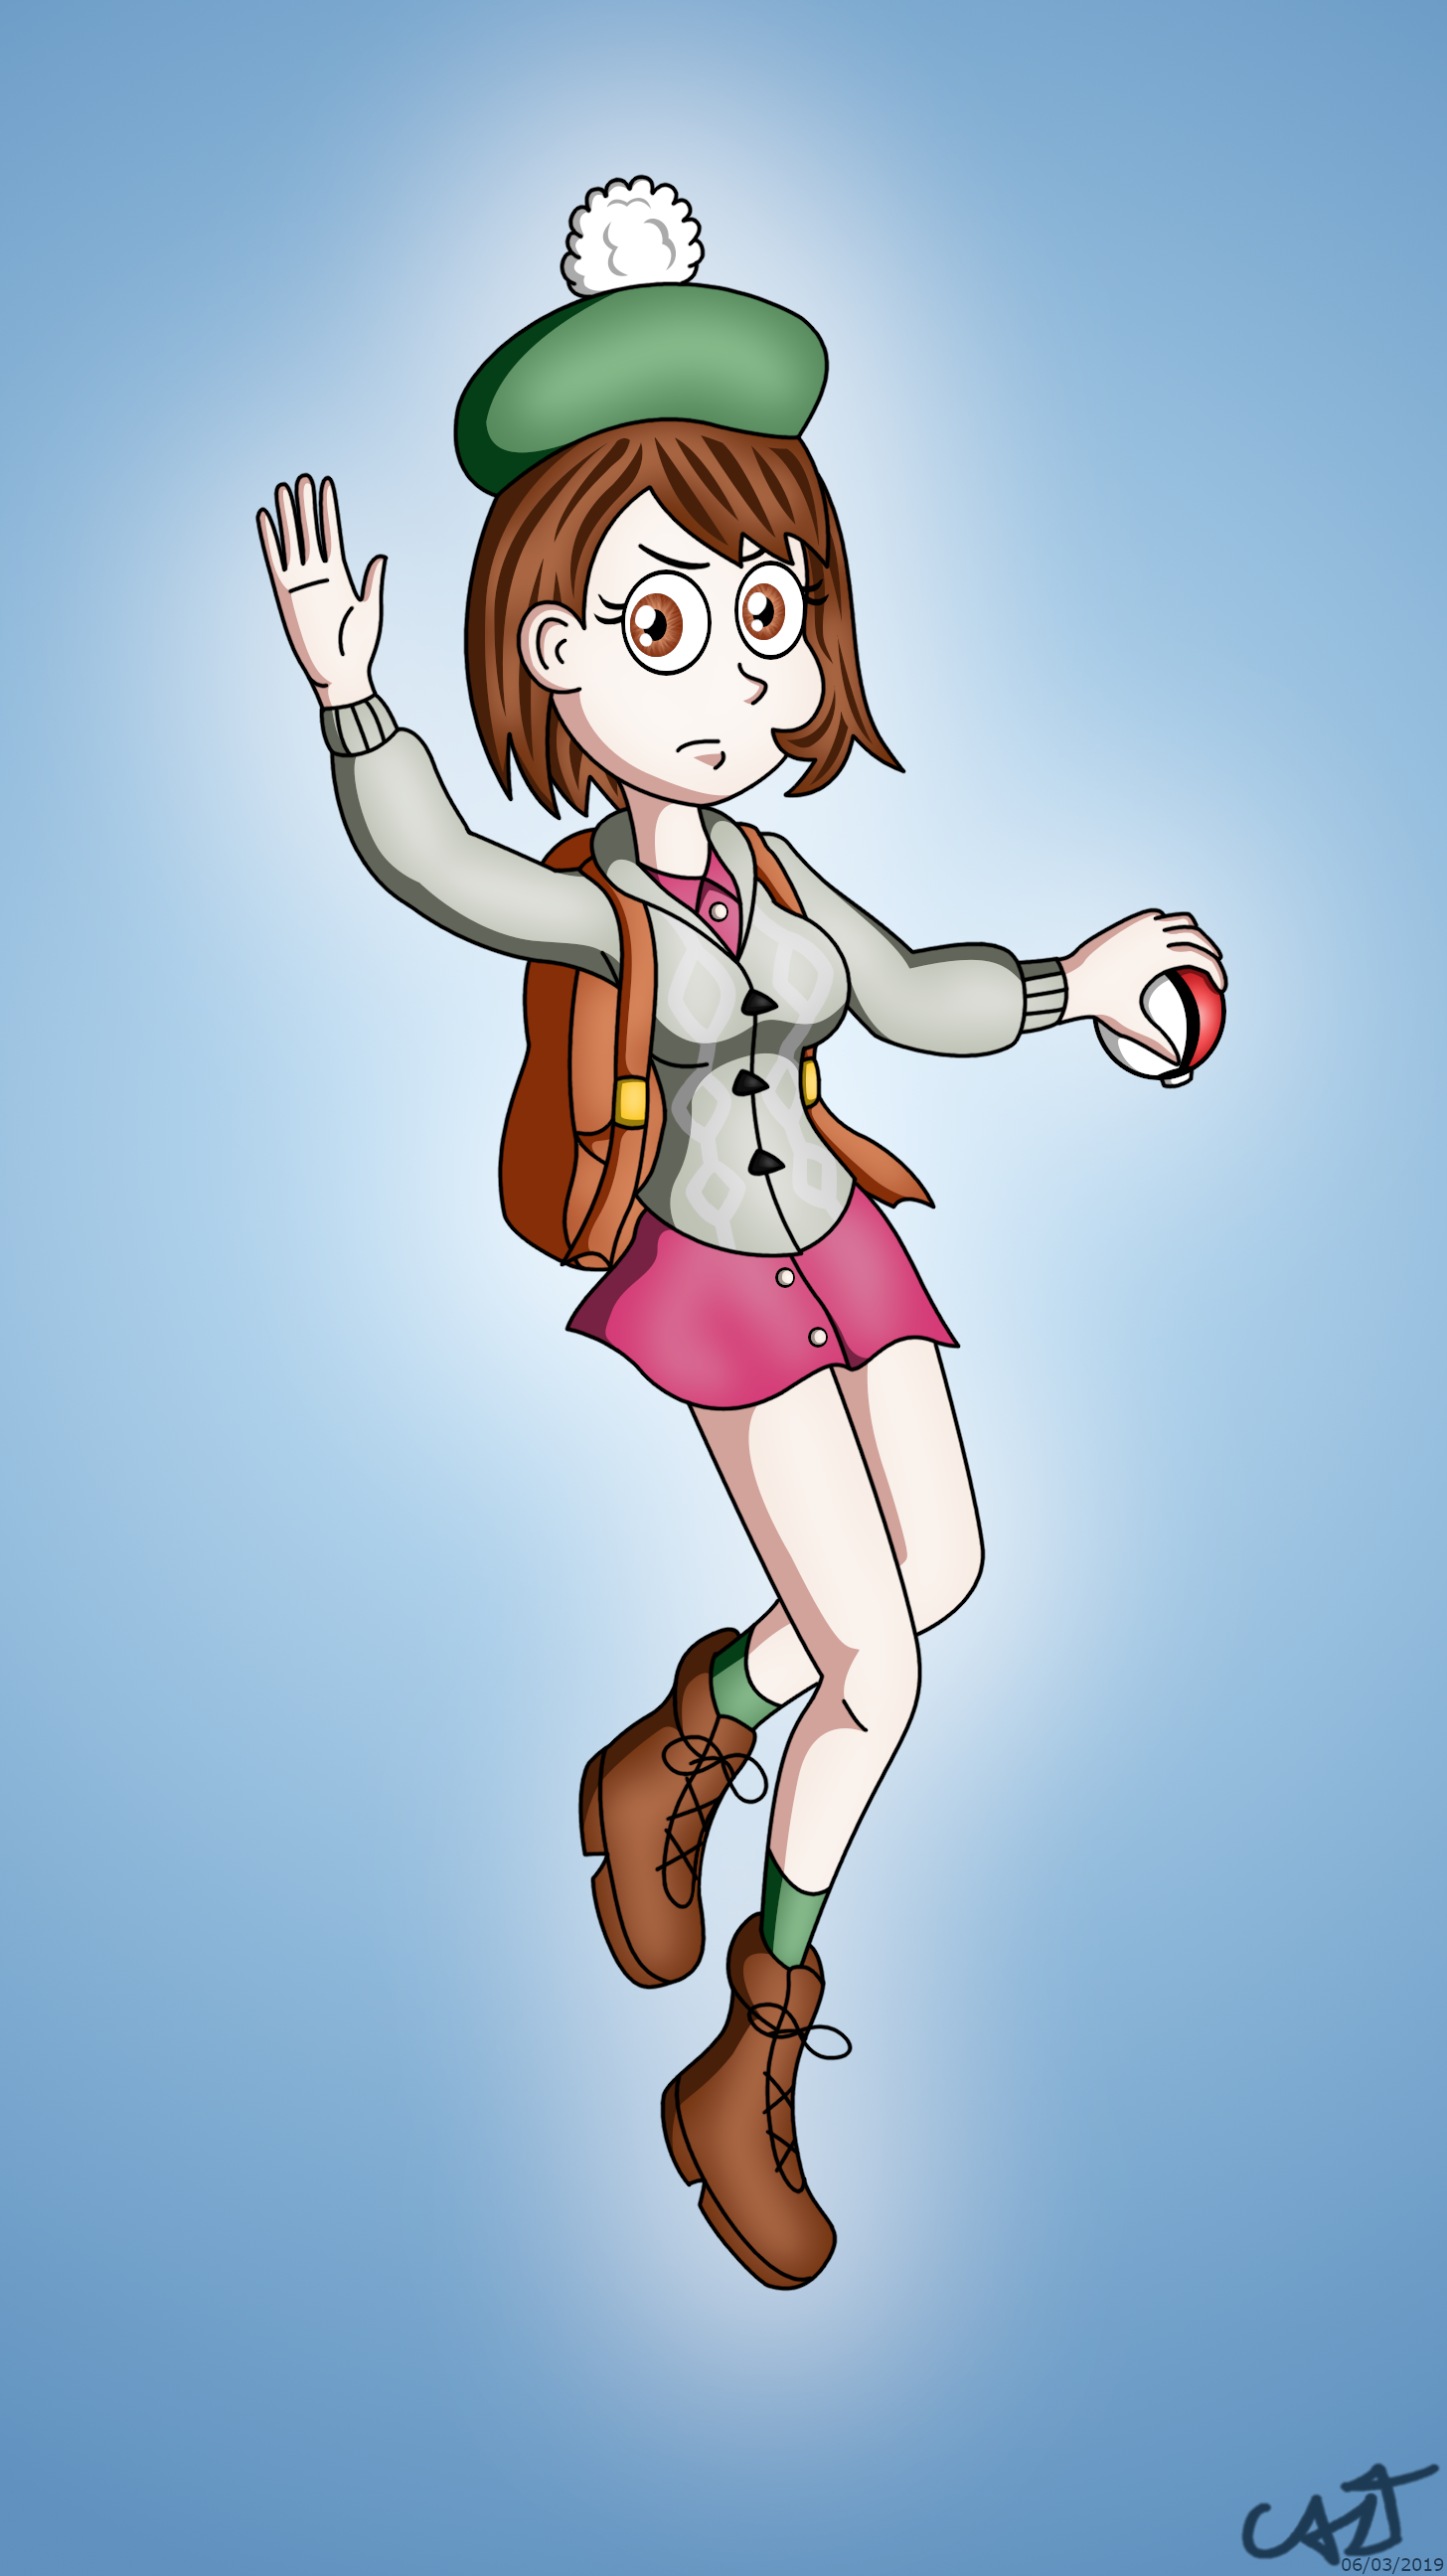 Pokemon Sword And Shield S Girl By Thecaztman On Newgrounds